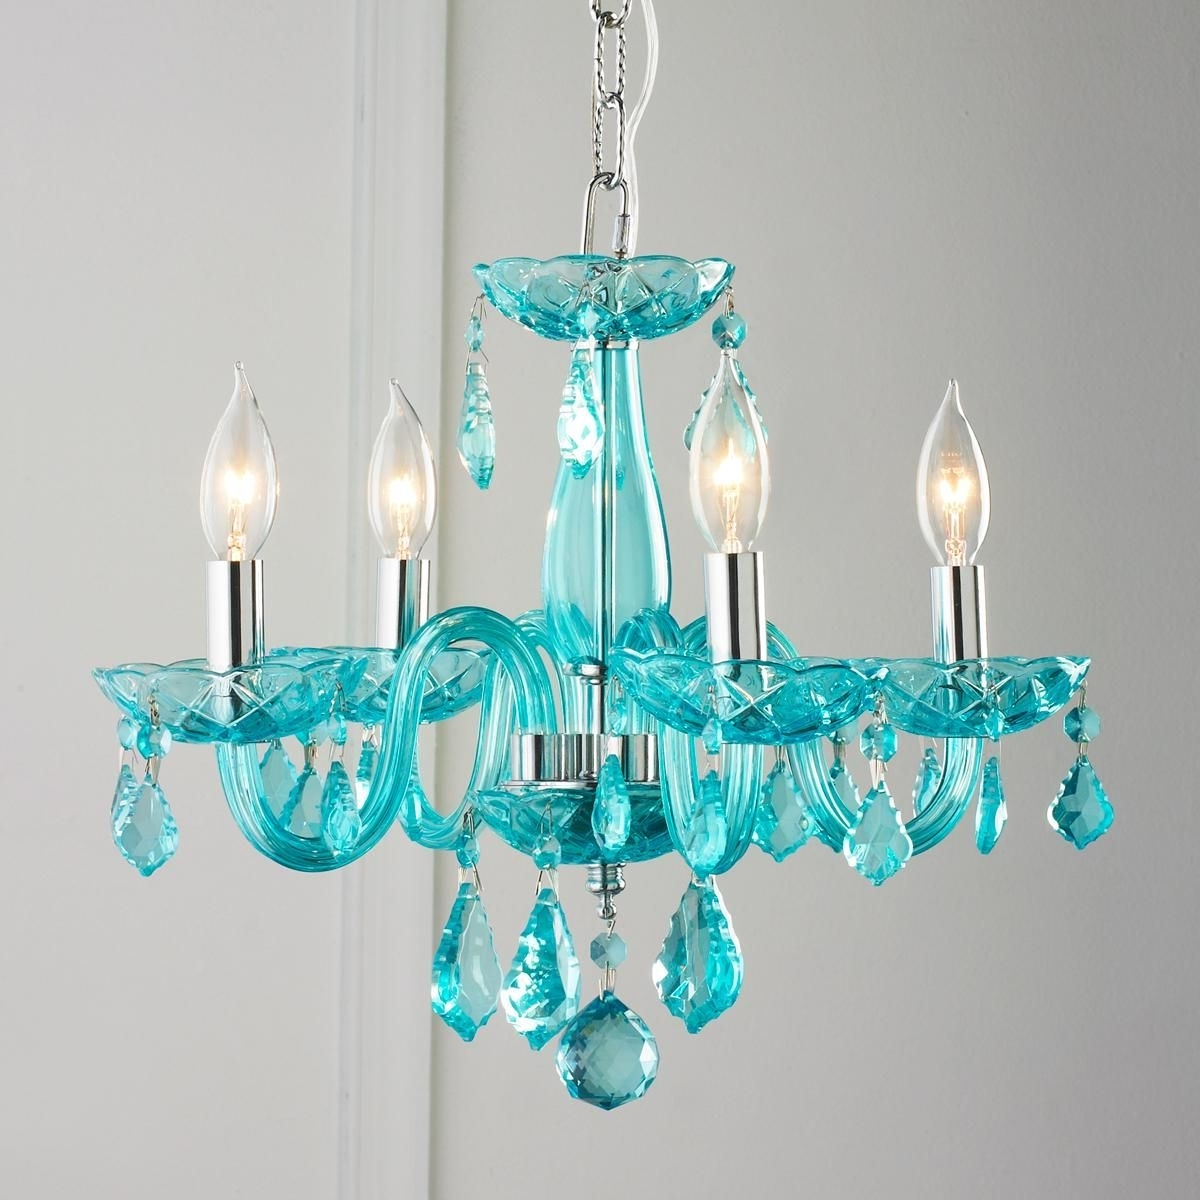 Well Liked Turquoise Crystal Chandelier Lights Inside Color Crystal Mini Chandelier (View 6 of 15)